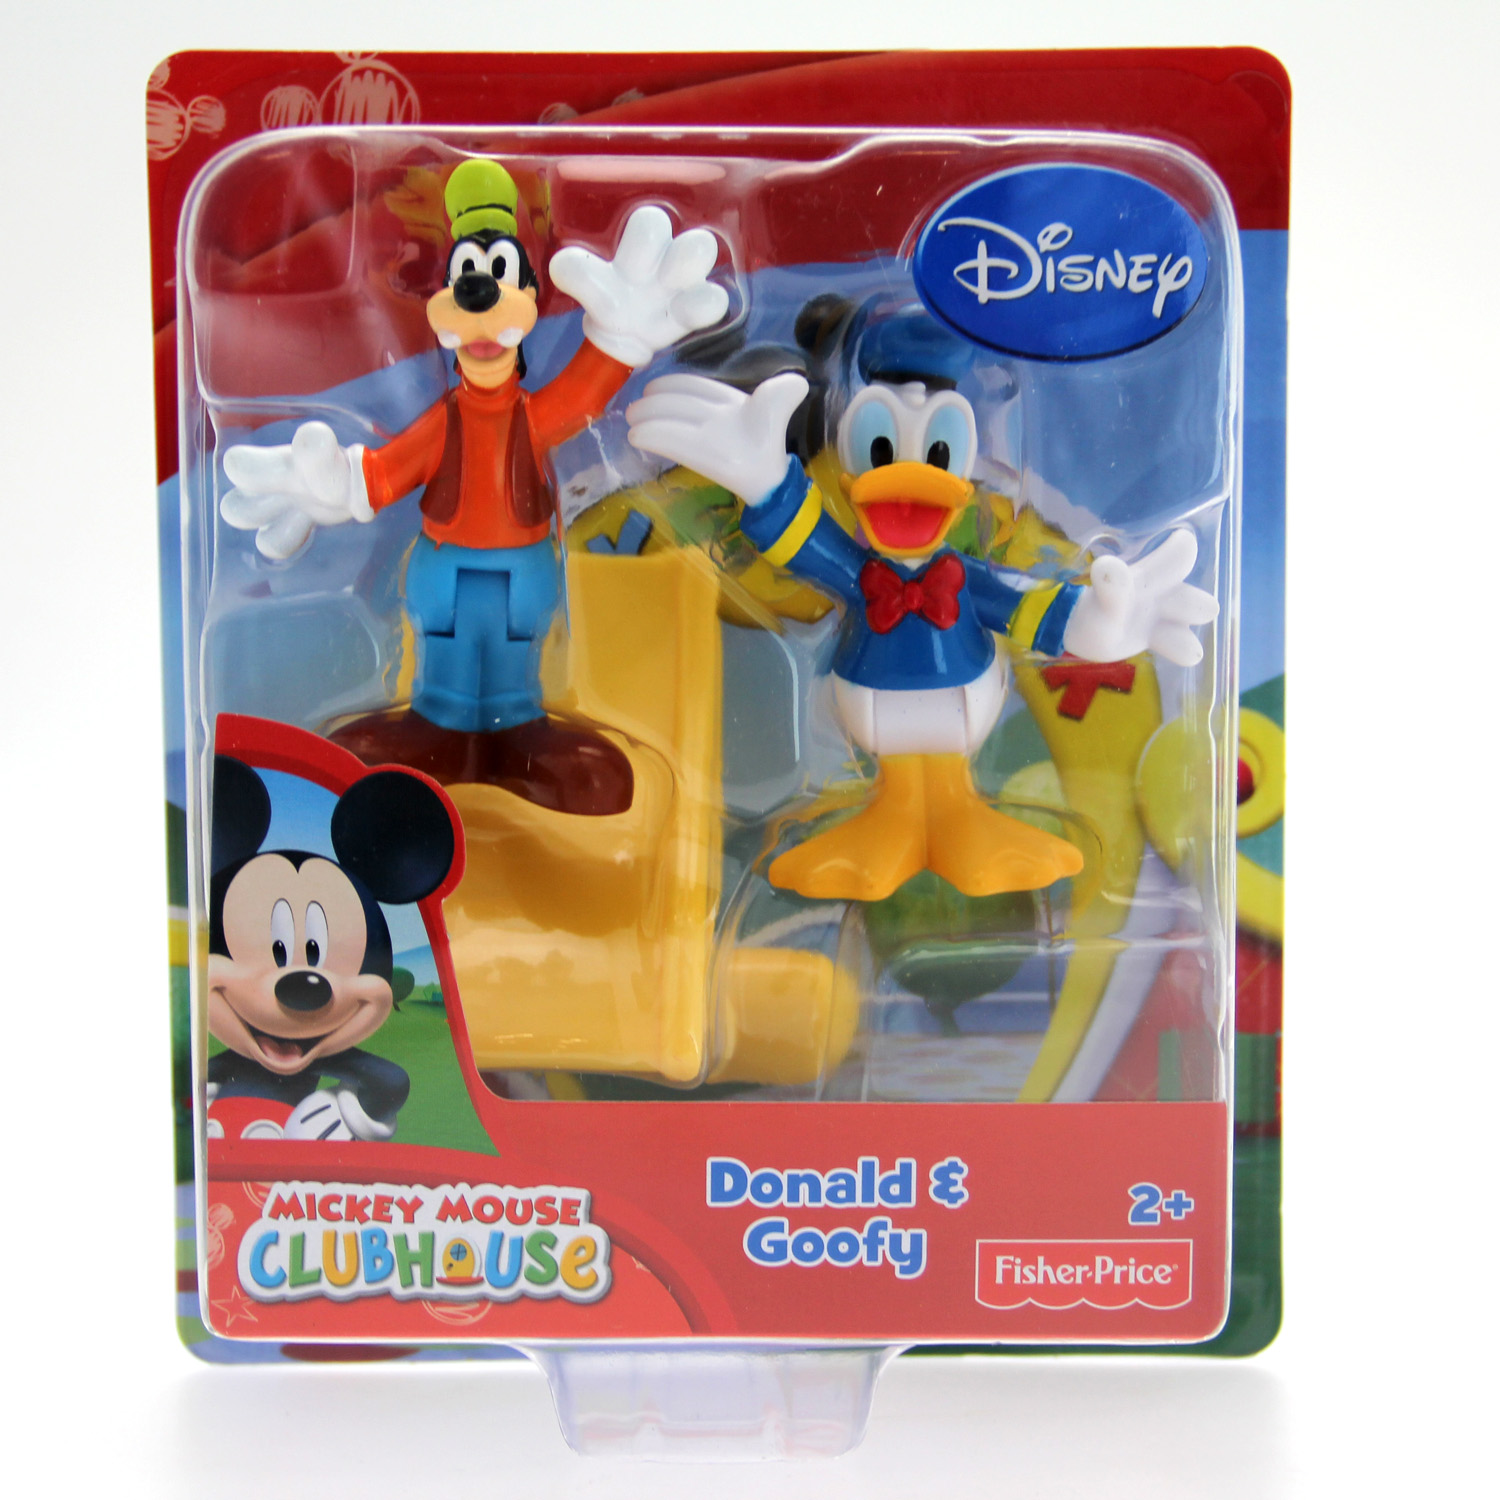 Mickey Mouse Clubhouse Bedroom Decor Mickey Mouse Clubhouse Toys Donald And Goofy Playset At